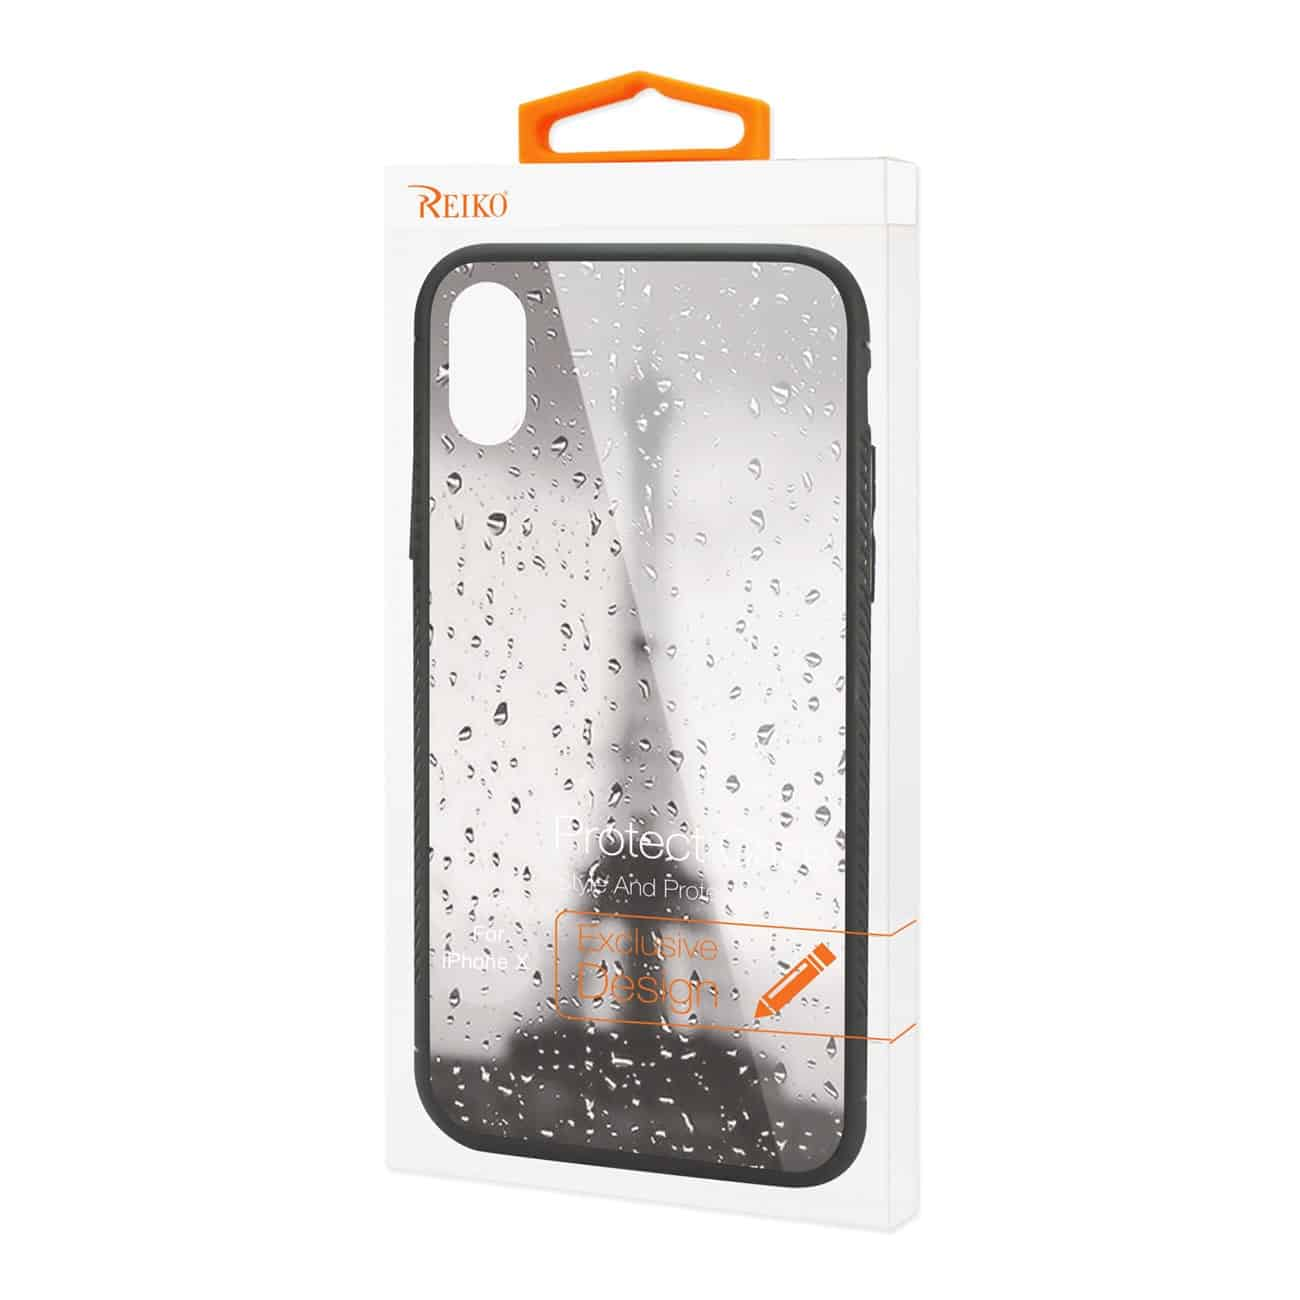 iPhone X/iPhone XS Hard Glass Design TPU Case With Rainy Scene